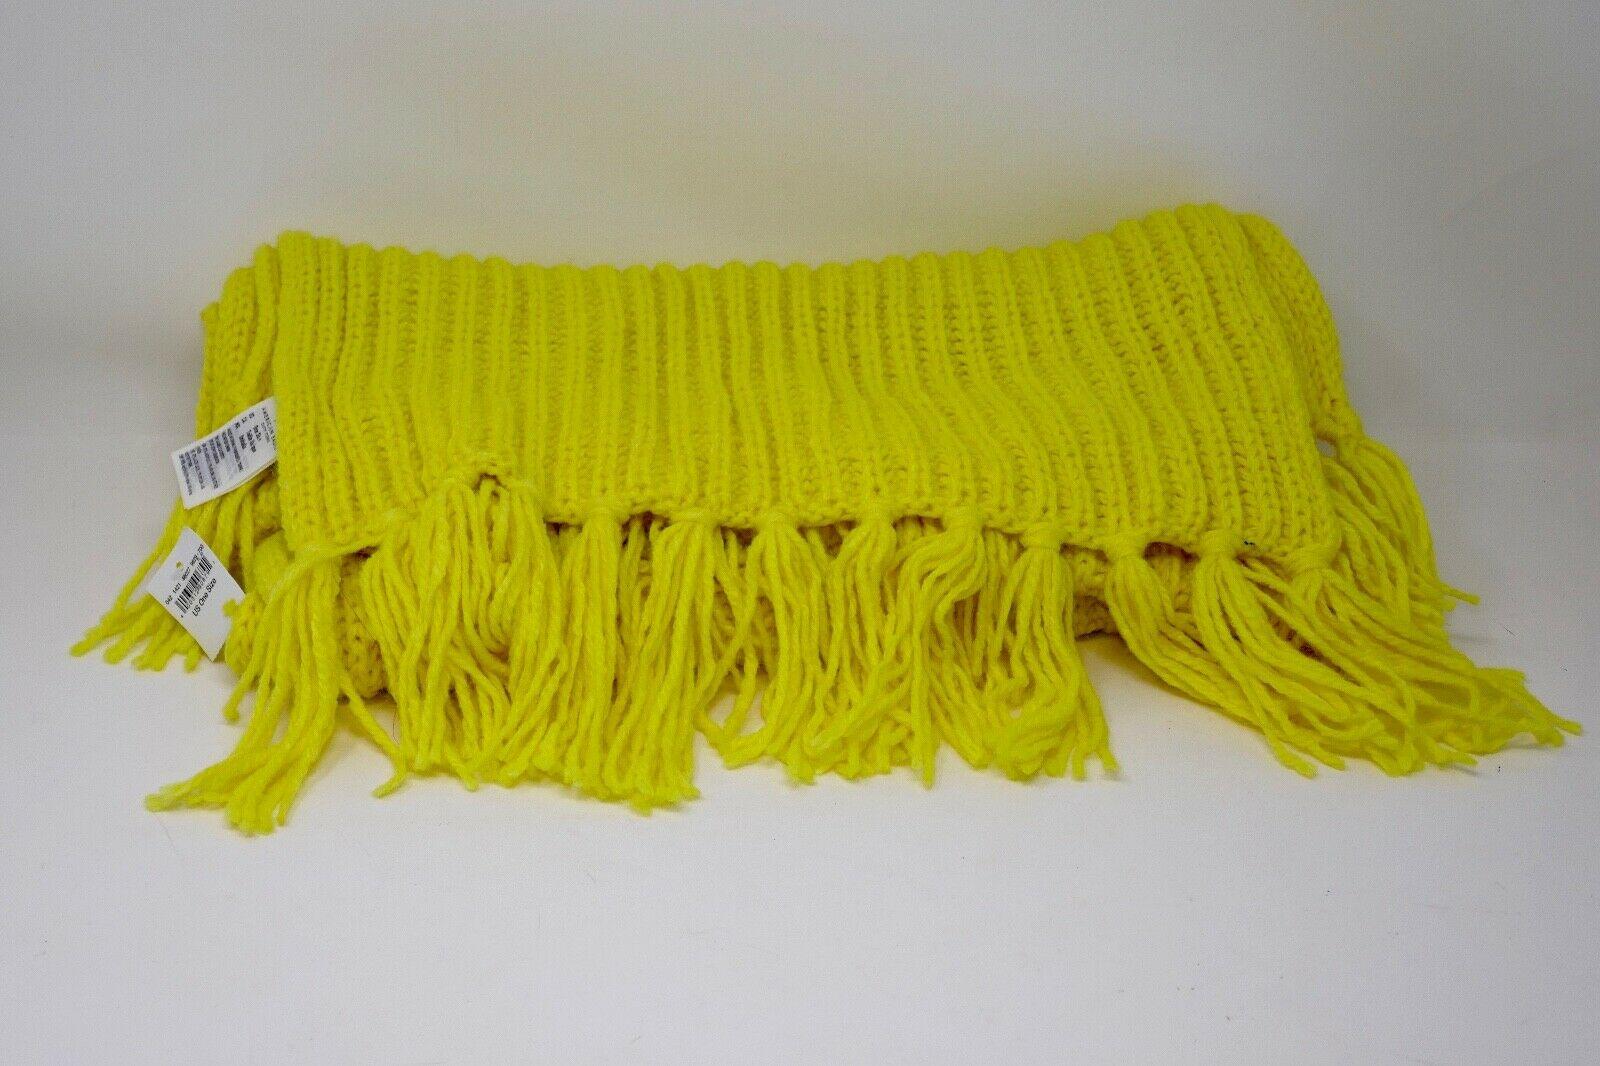 America Eagle Outfitter Neon Yellow Knit Acrylic Blend Oversized Scarf w/Tags